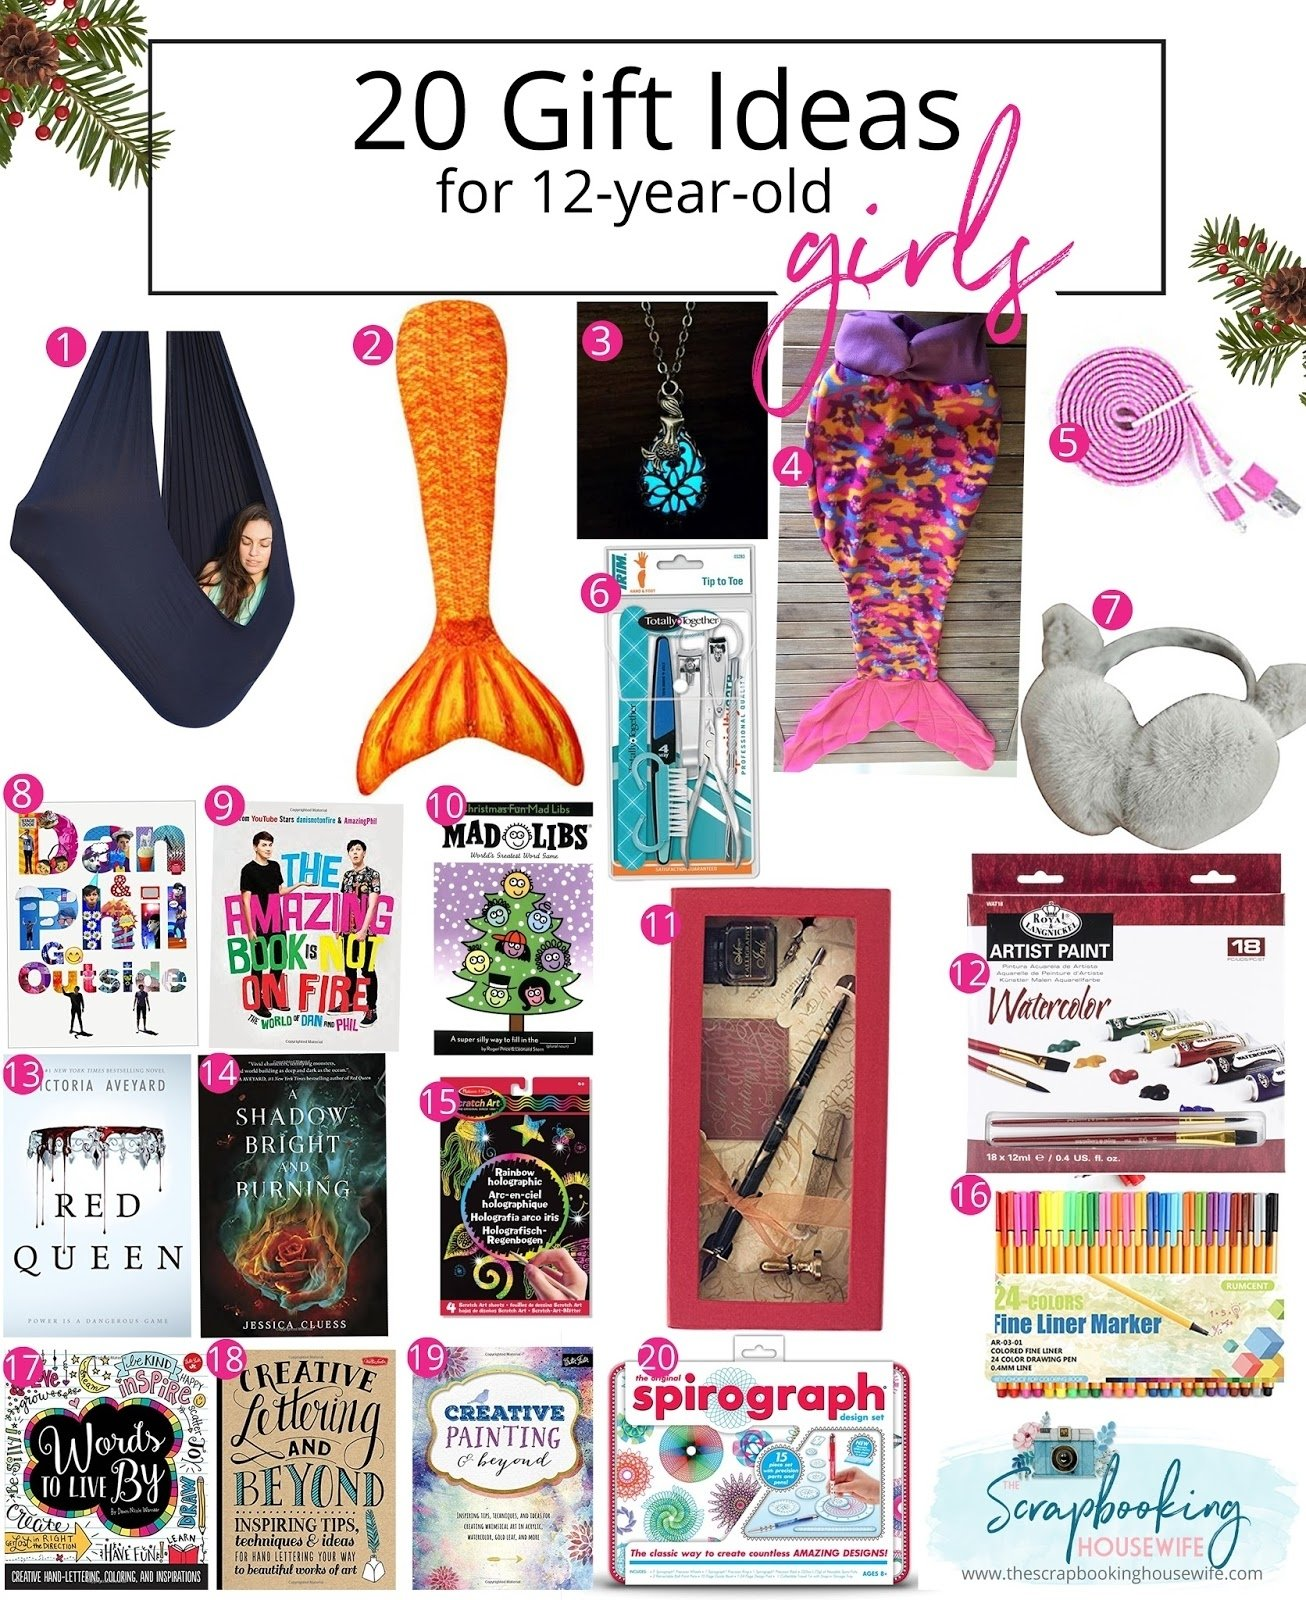 10 Attractive Gift Ideas For 11 Year Old Girl ellabella designs 20 gift ideas for 12 year old tween girls 6 2020